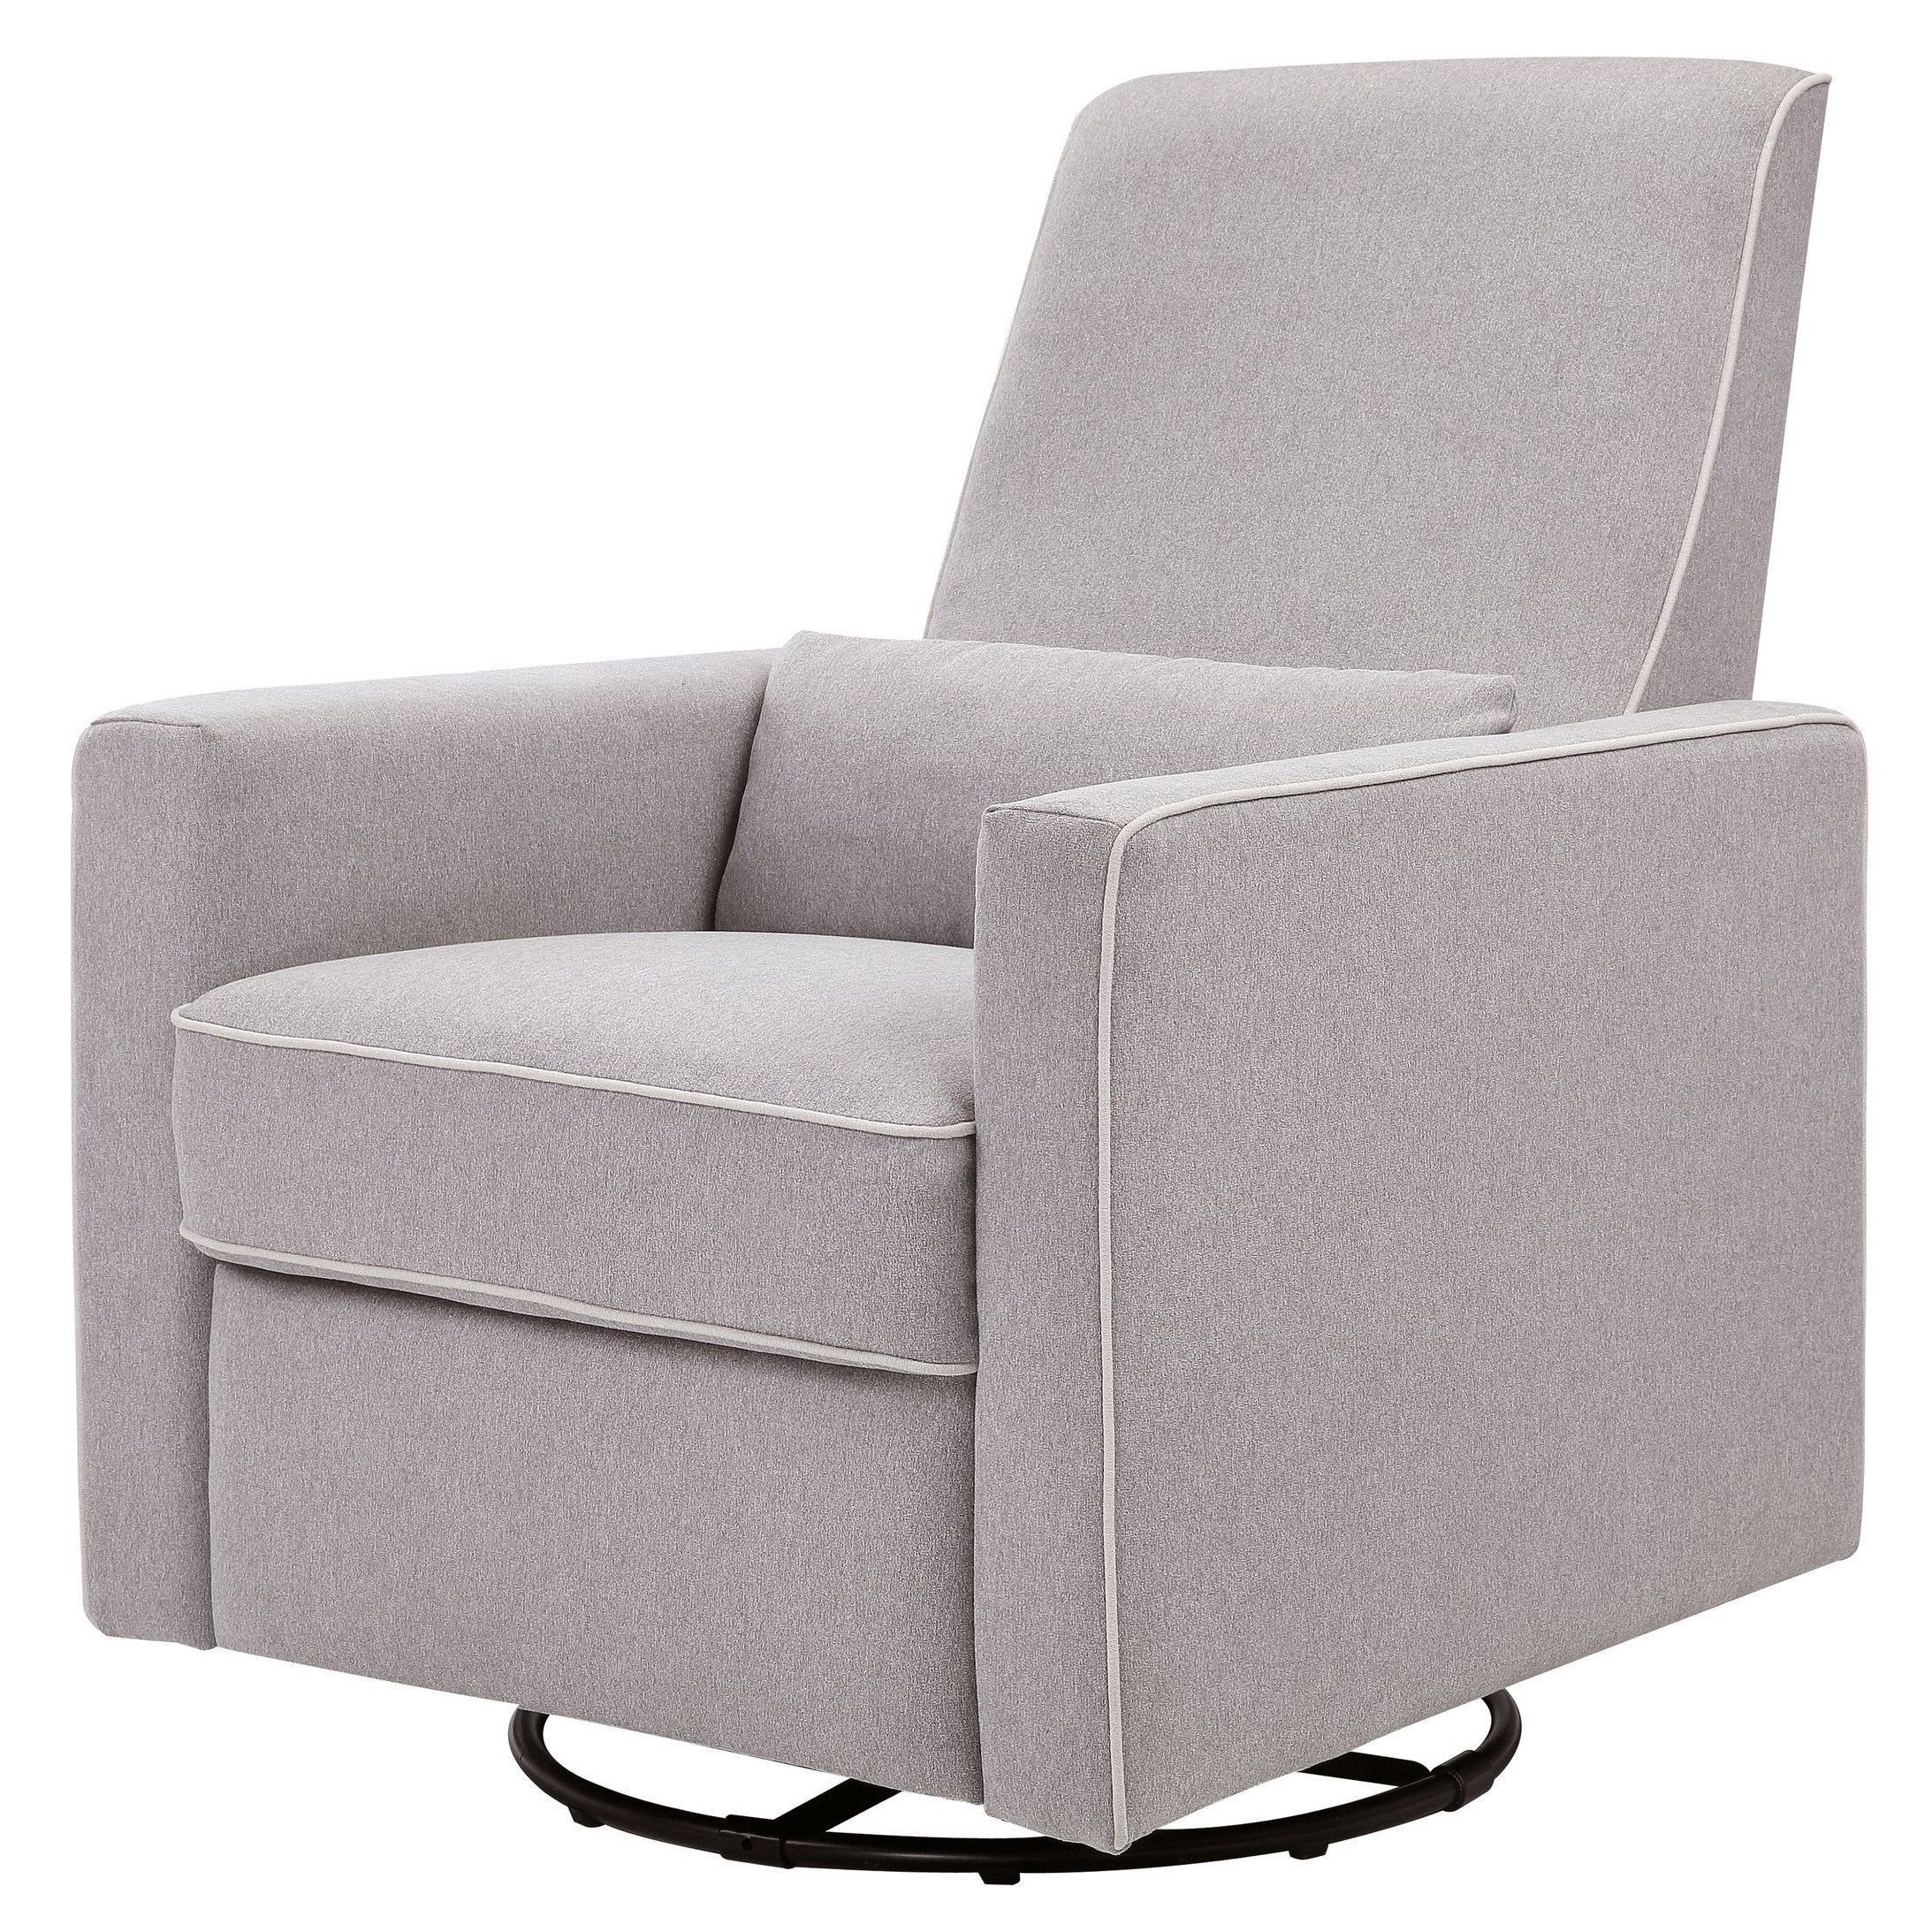 Adorable fabric upholstered glider rocker with armchairs and wooden laminate floor for living room